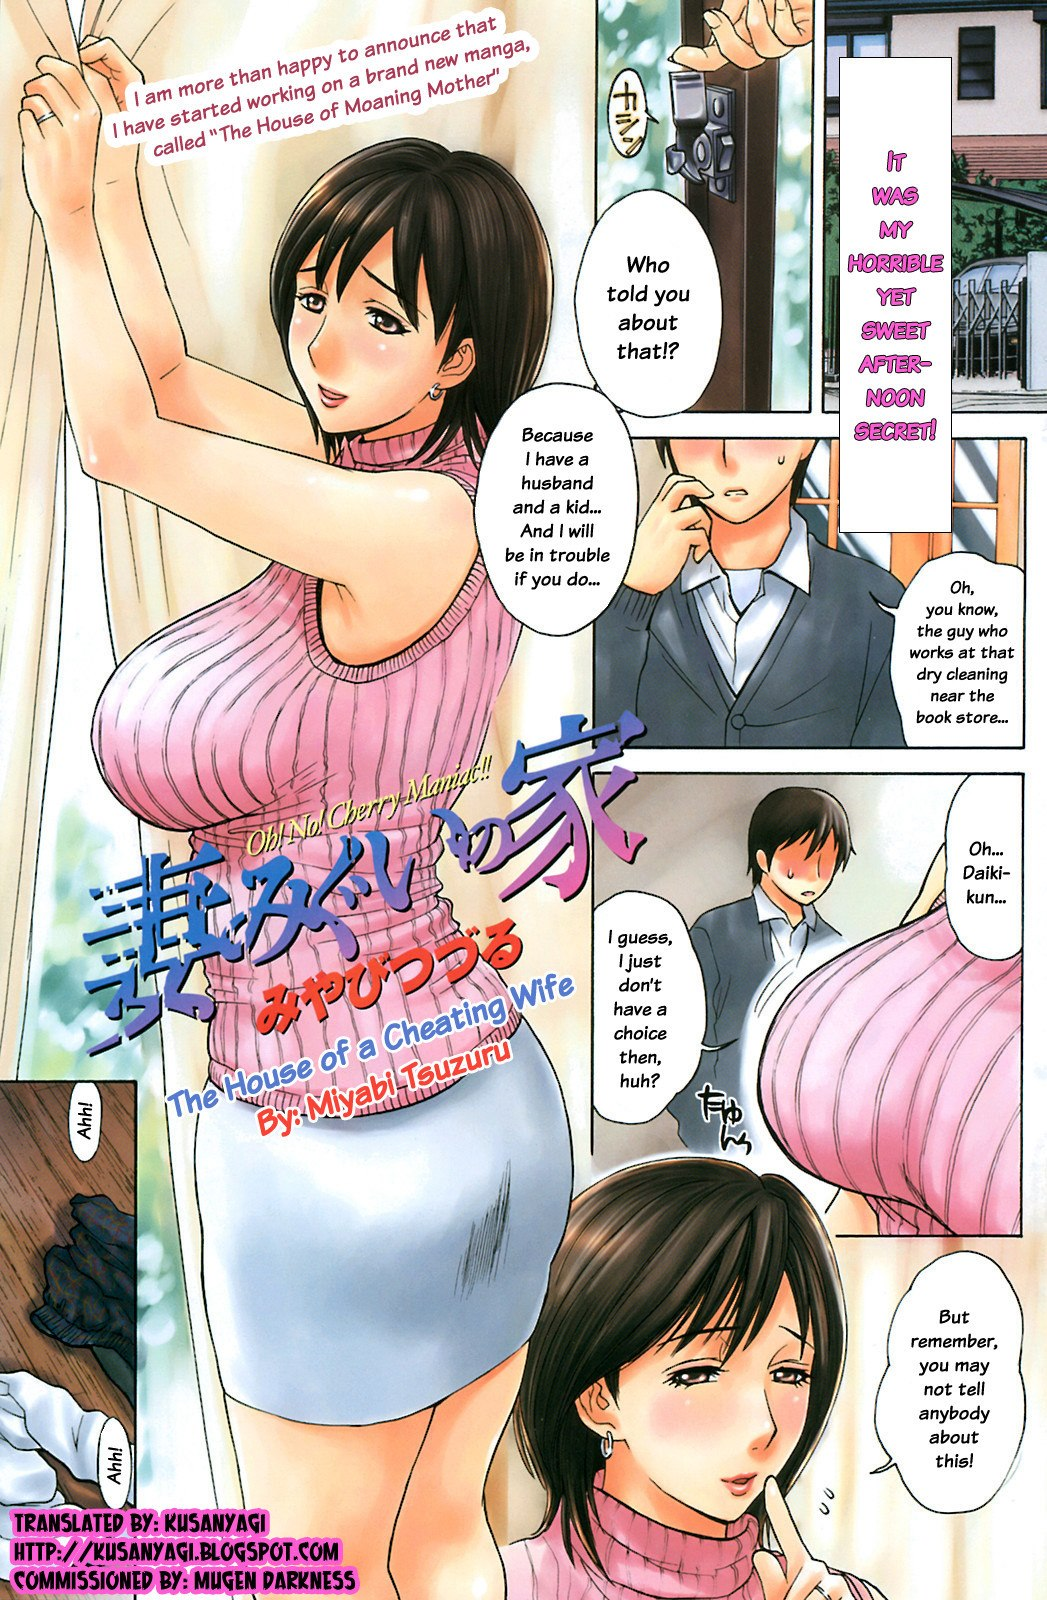 Porn Comics - The House of Cheating Wife- Tsumamigui no Ie porn comics 8 muses